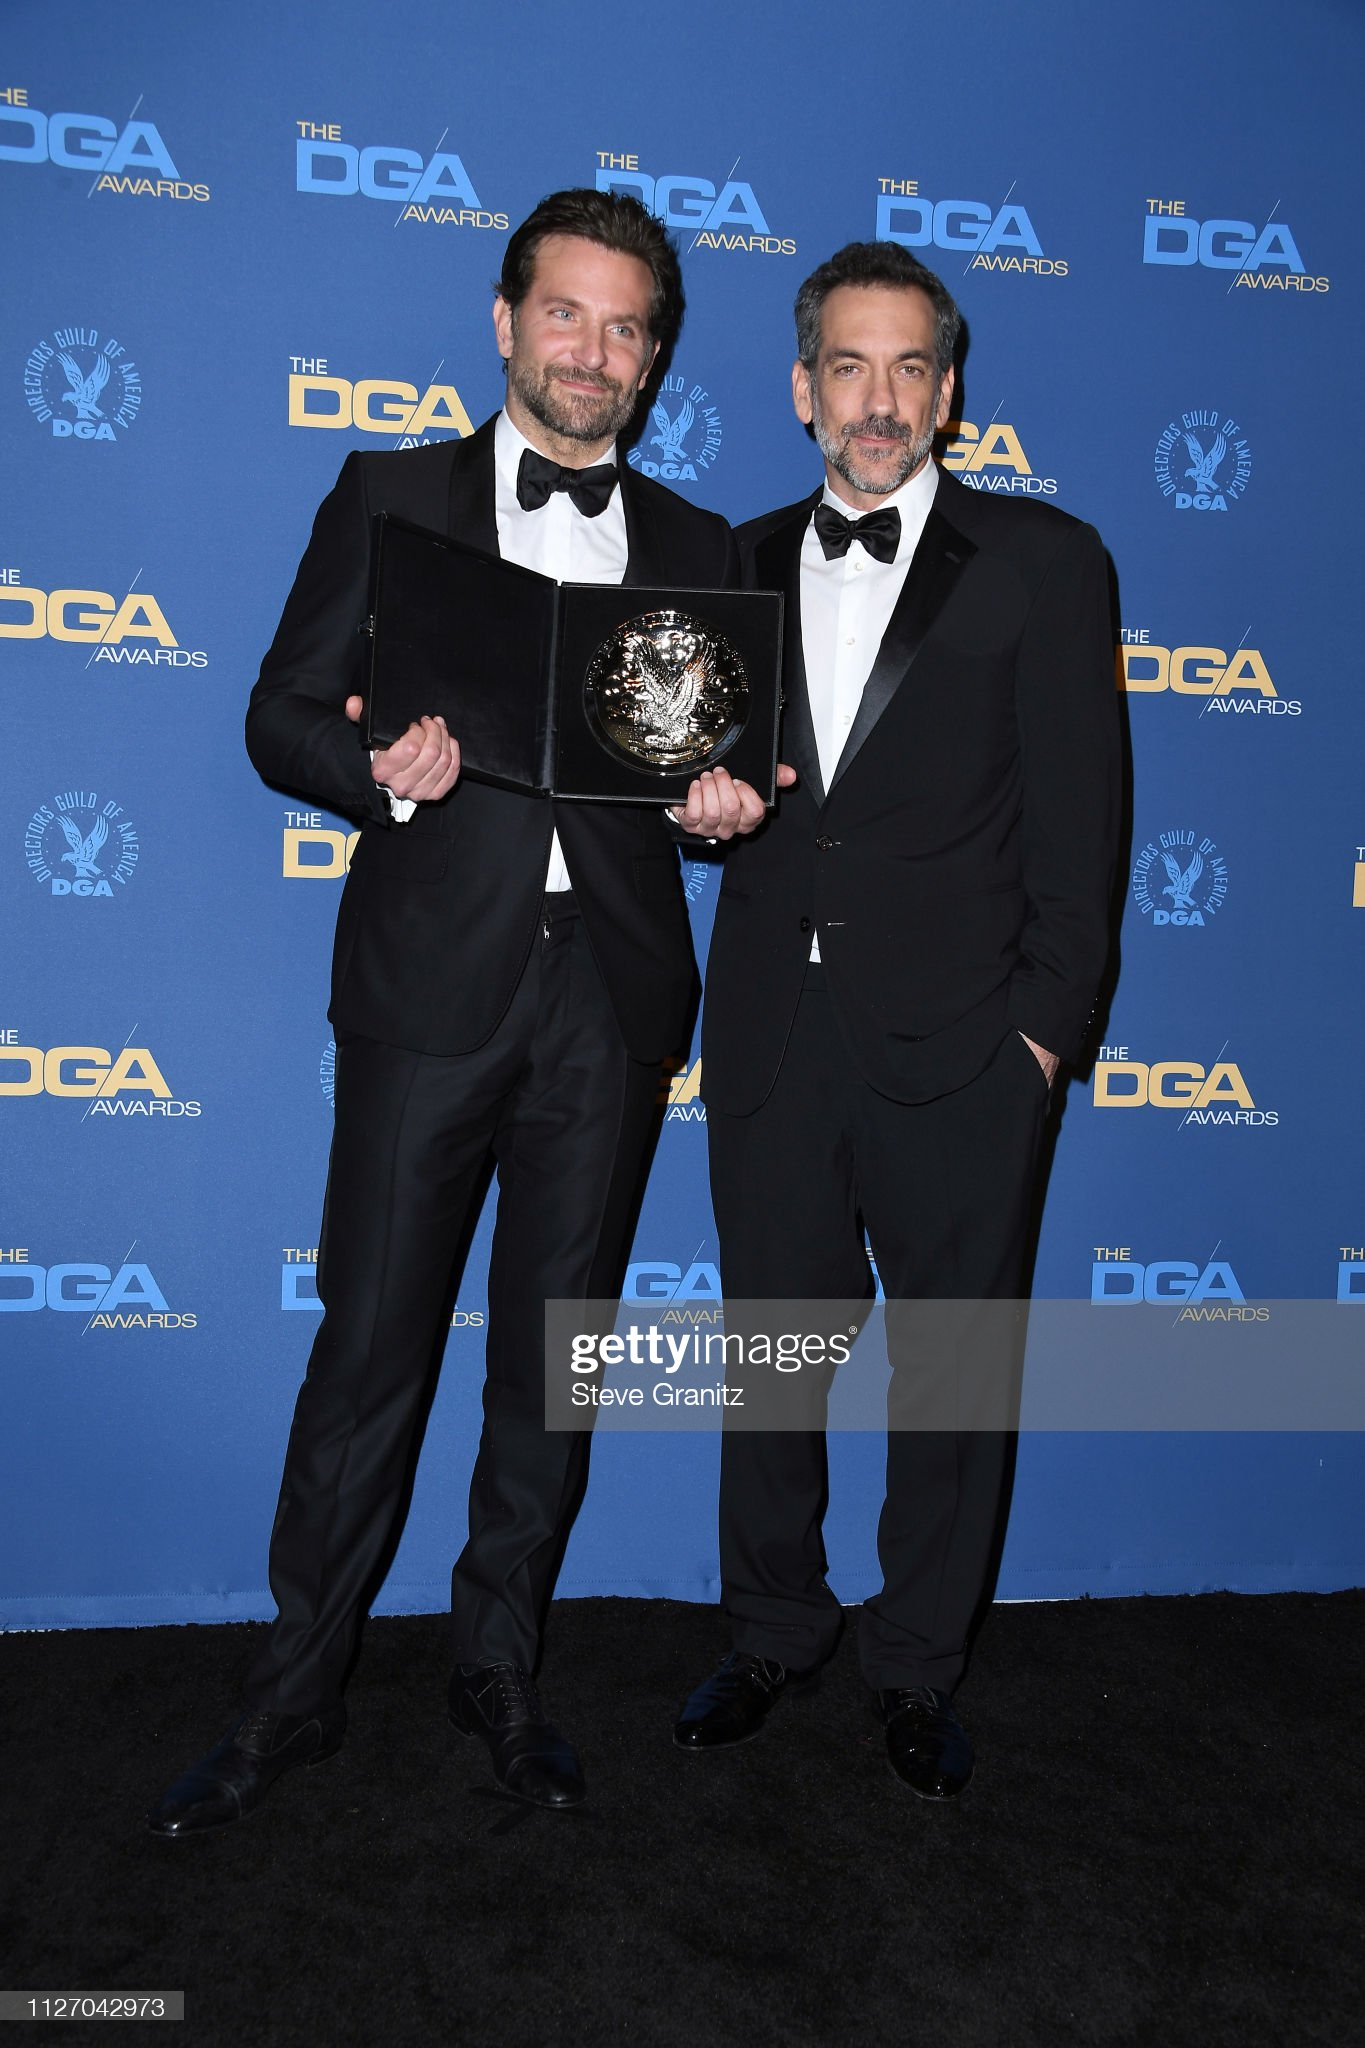 ¿Cuánto mide Joaquin Phoenix? - Altura - Real height Bradley-cooper-and-todd-phillips-pose-in-the-pressroom-with-the-award-picture-id1127042973?s=2048x2048